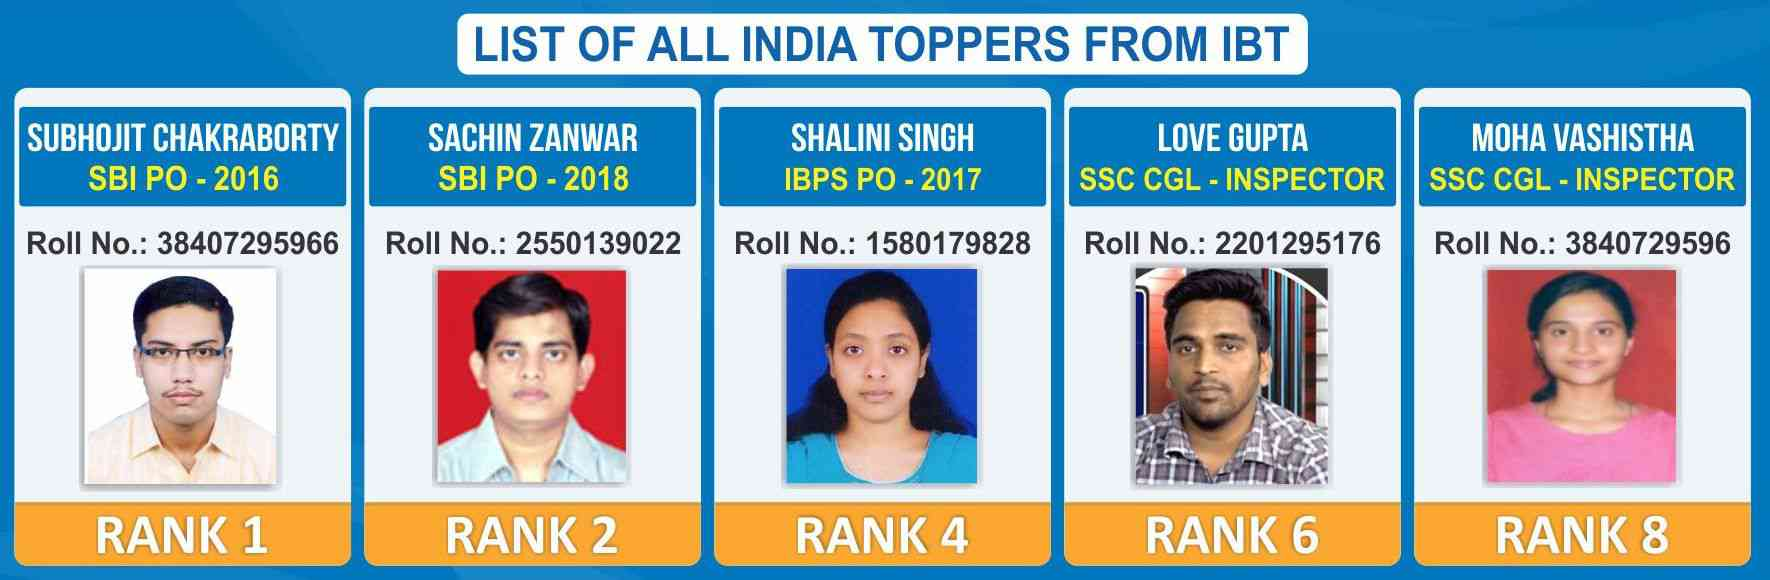 All  india toppers of  IBT